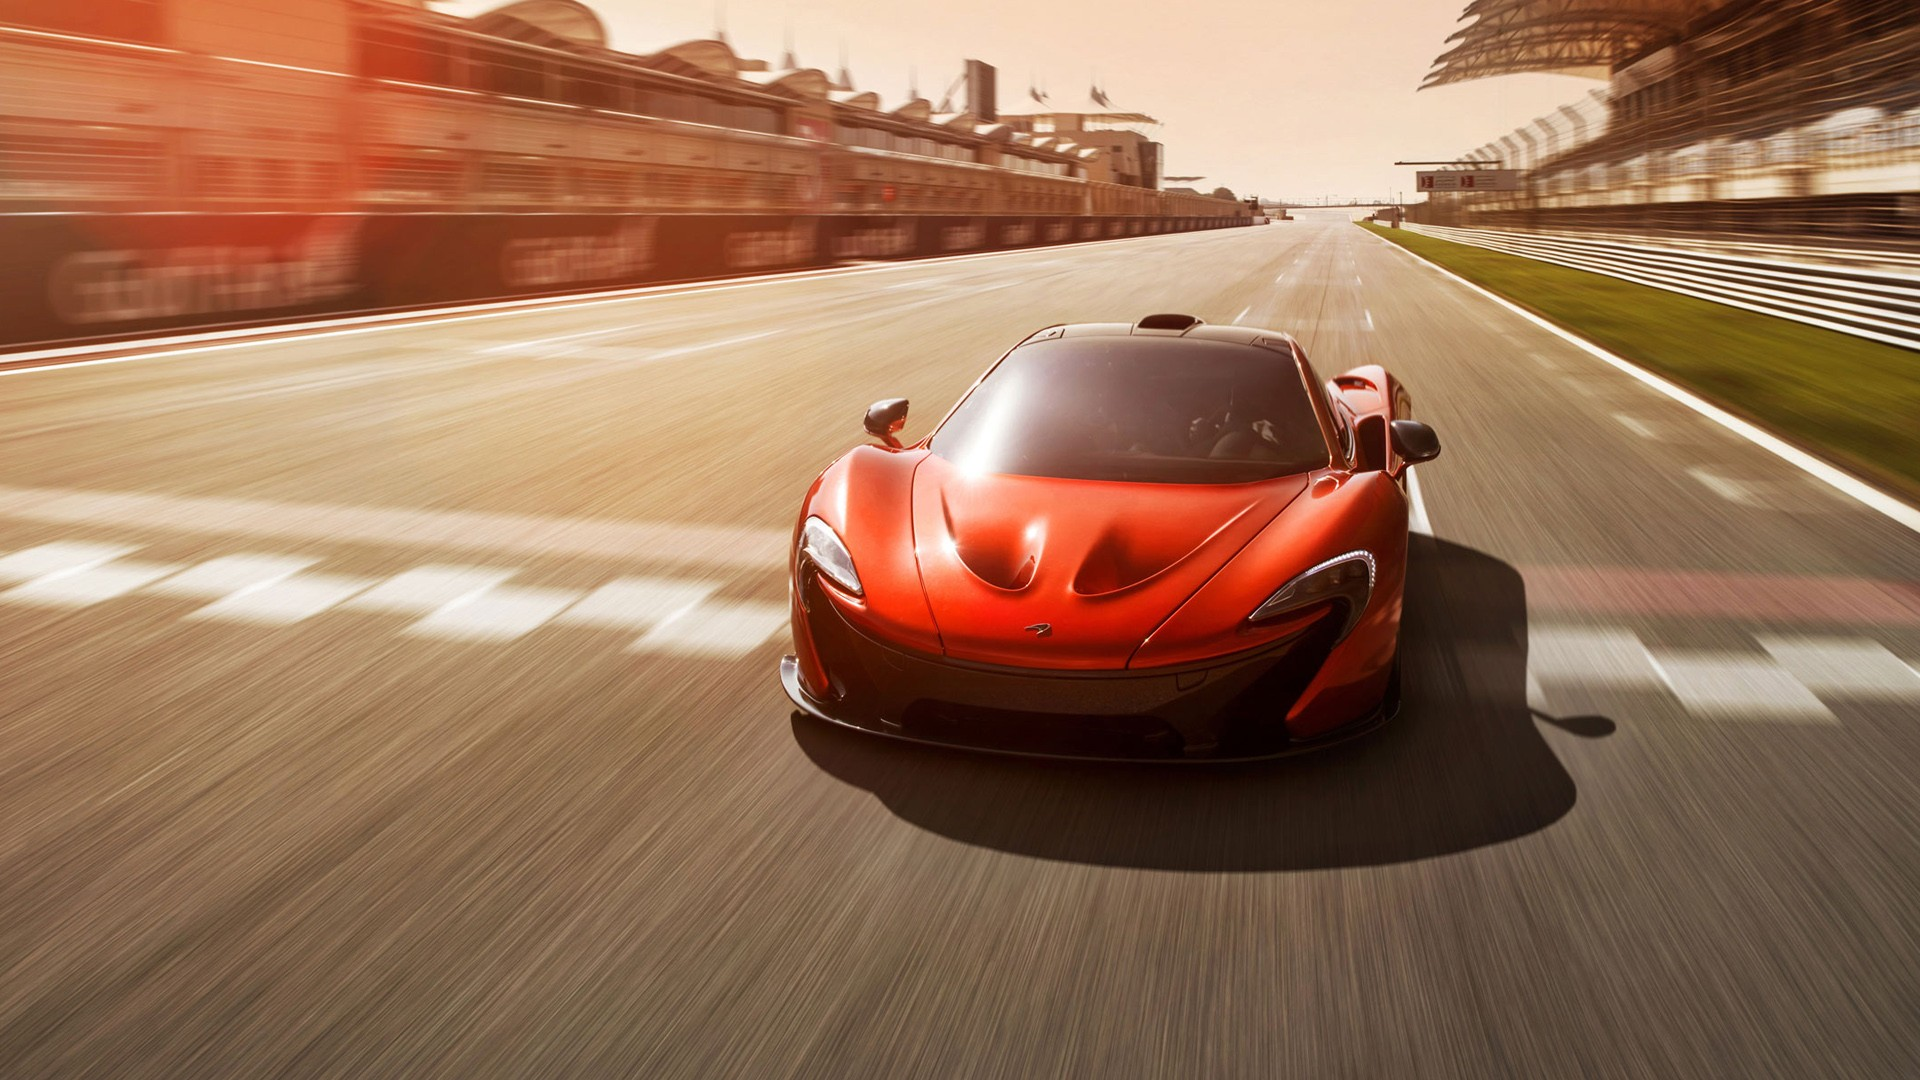 Widescreen Car Wallpapers Hd Mclaren P1 Concept 2 Wallpaper Hd Car Wallpapers Id 3387